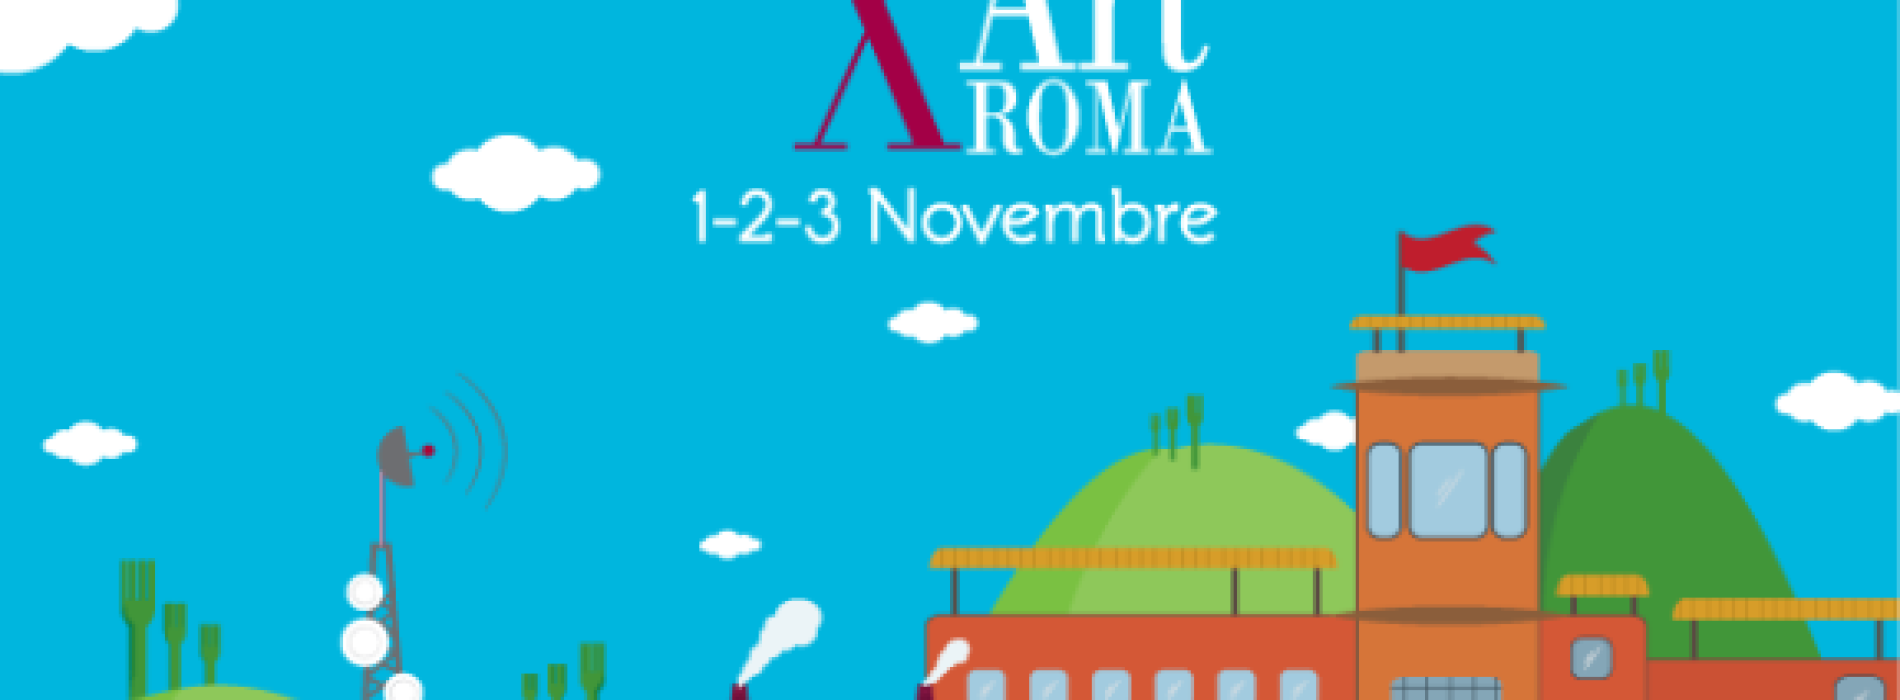 Cooking for Art 2014 a Roma: alle Officine Farneto le eccellenze gastronomiche italiane e showcooking di chef stellati